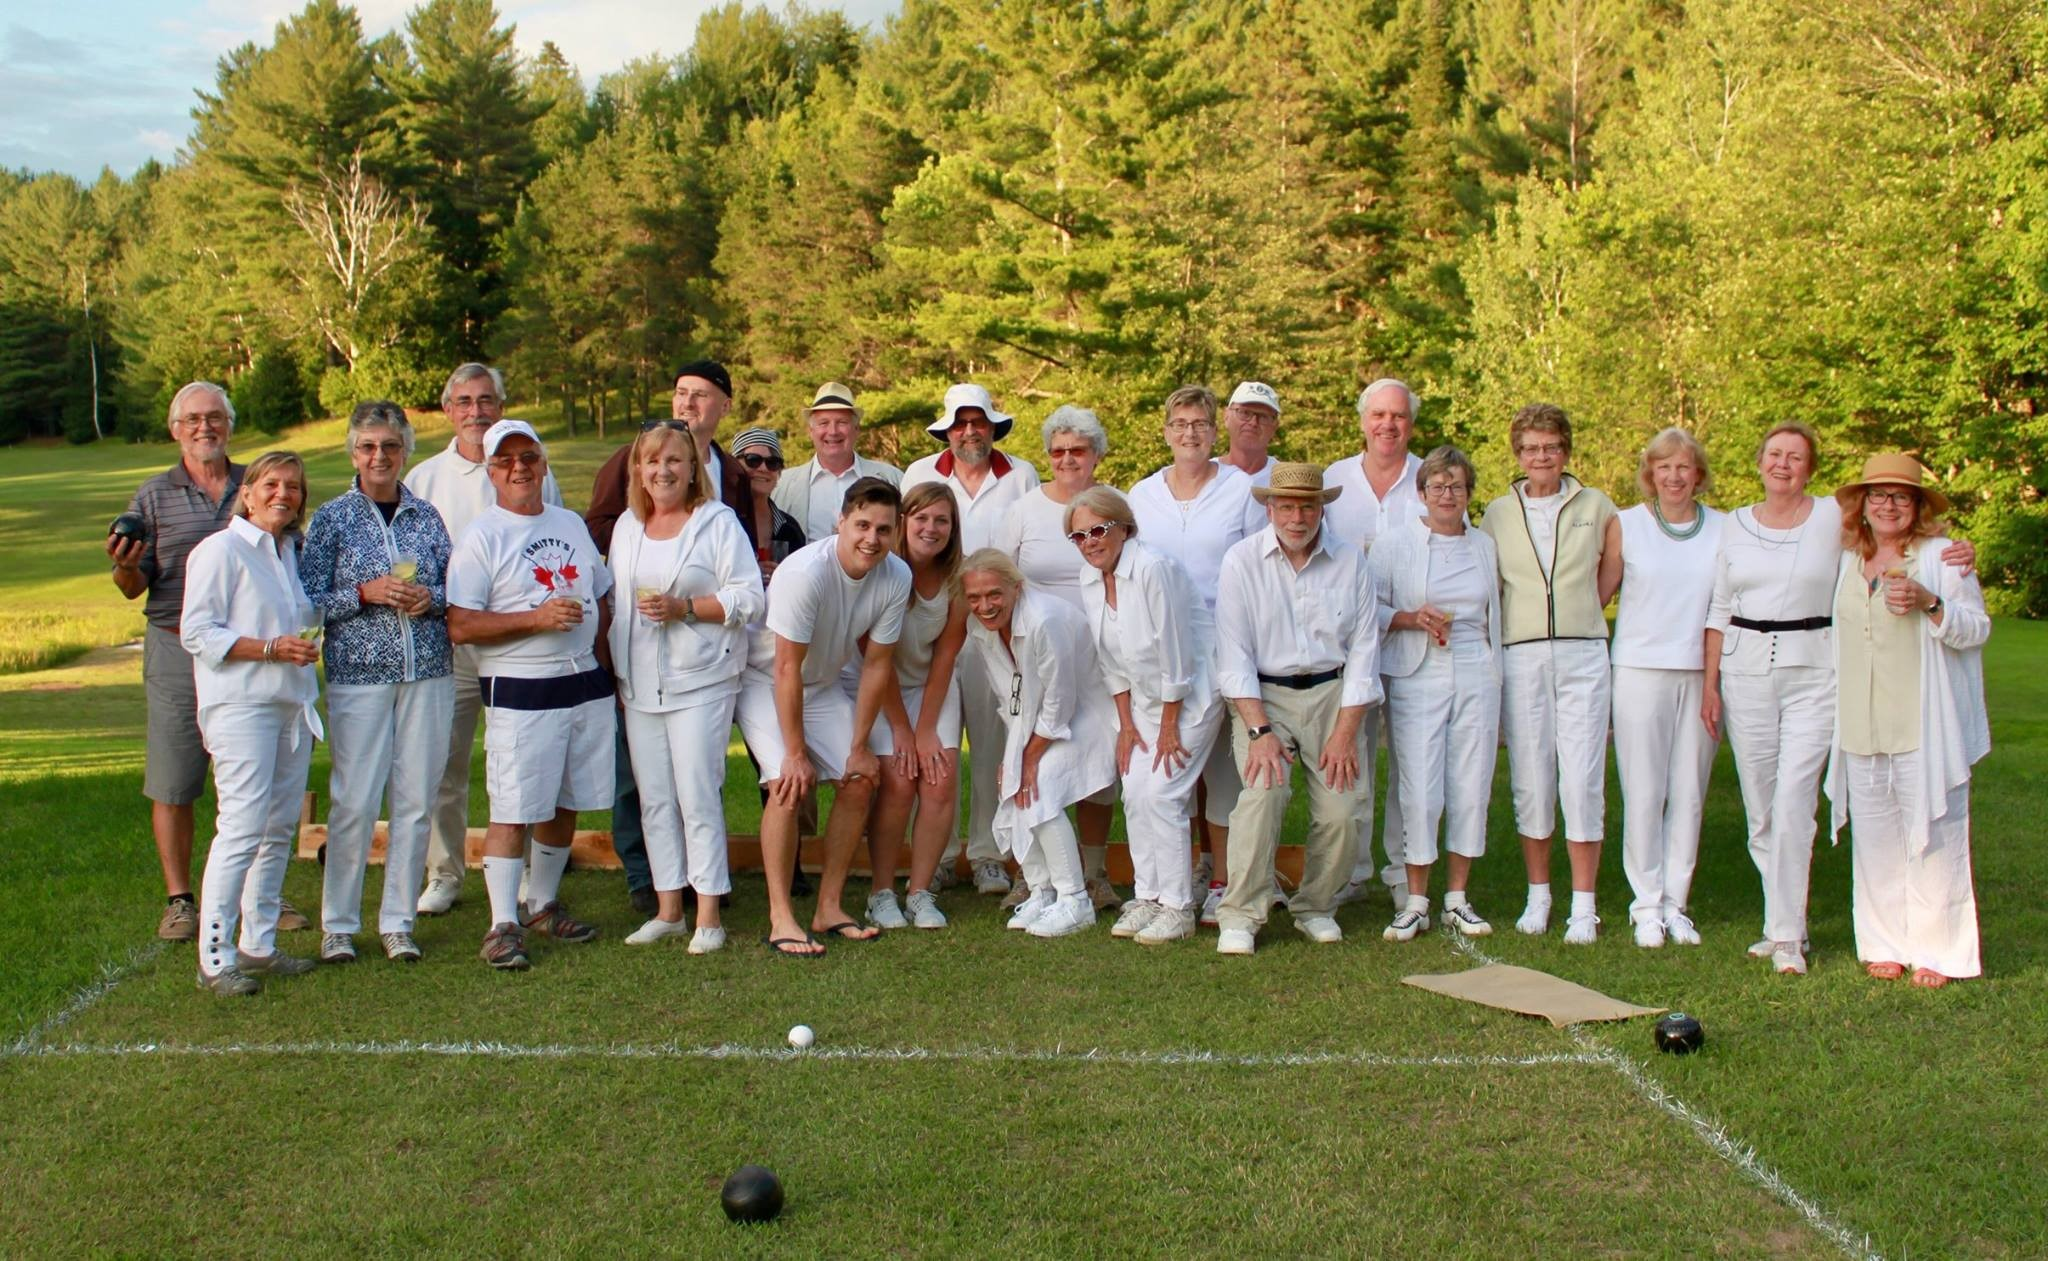 5Lawn Bowling photo by June Parker